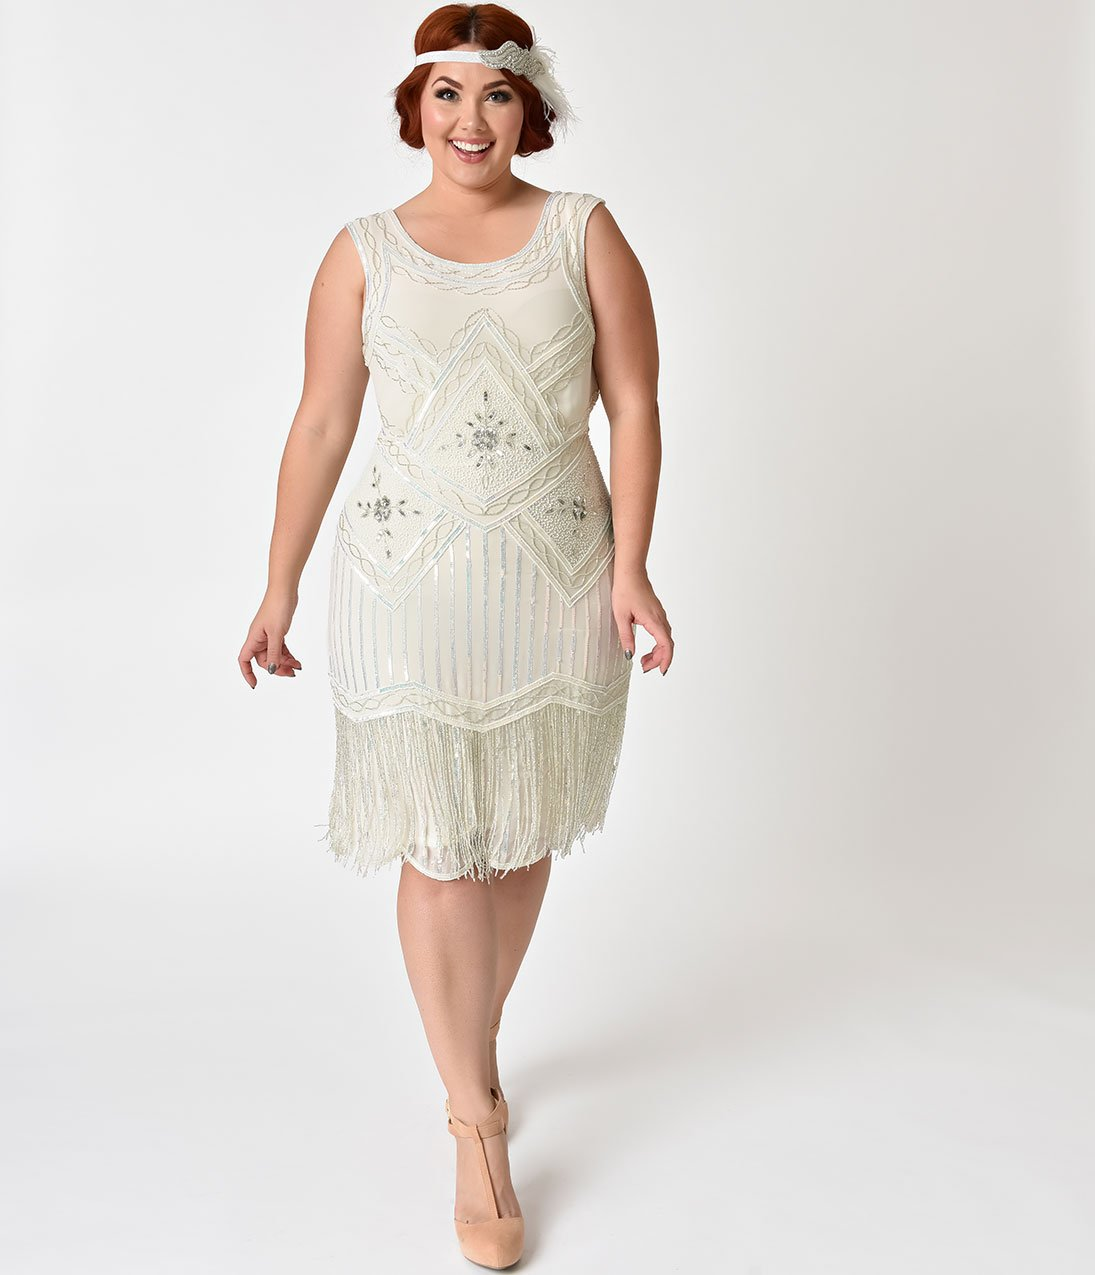 1920s Style Dresses 20s Dresses 1920s Inspired Fashion Great Gatsby Dresses 1920s Fashion